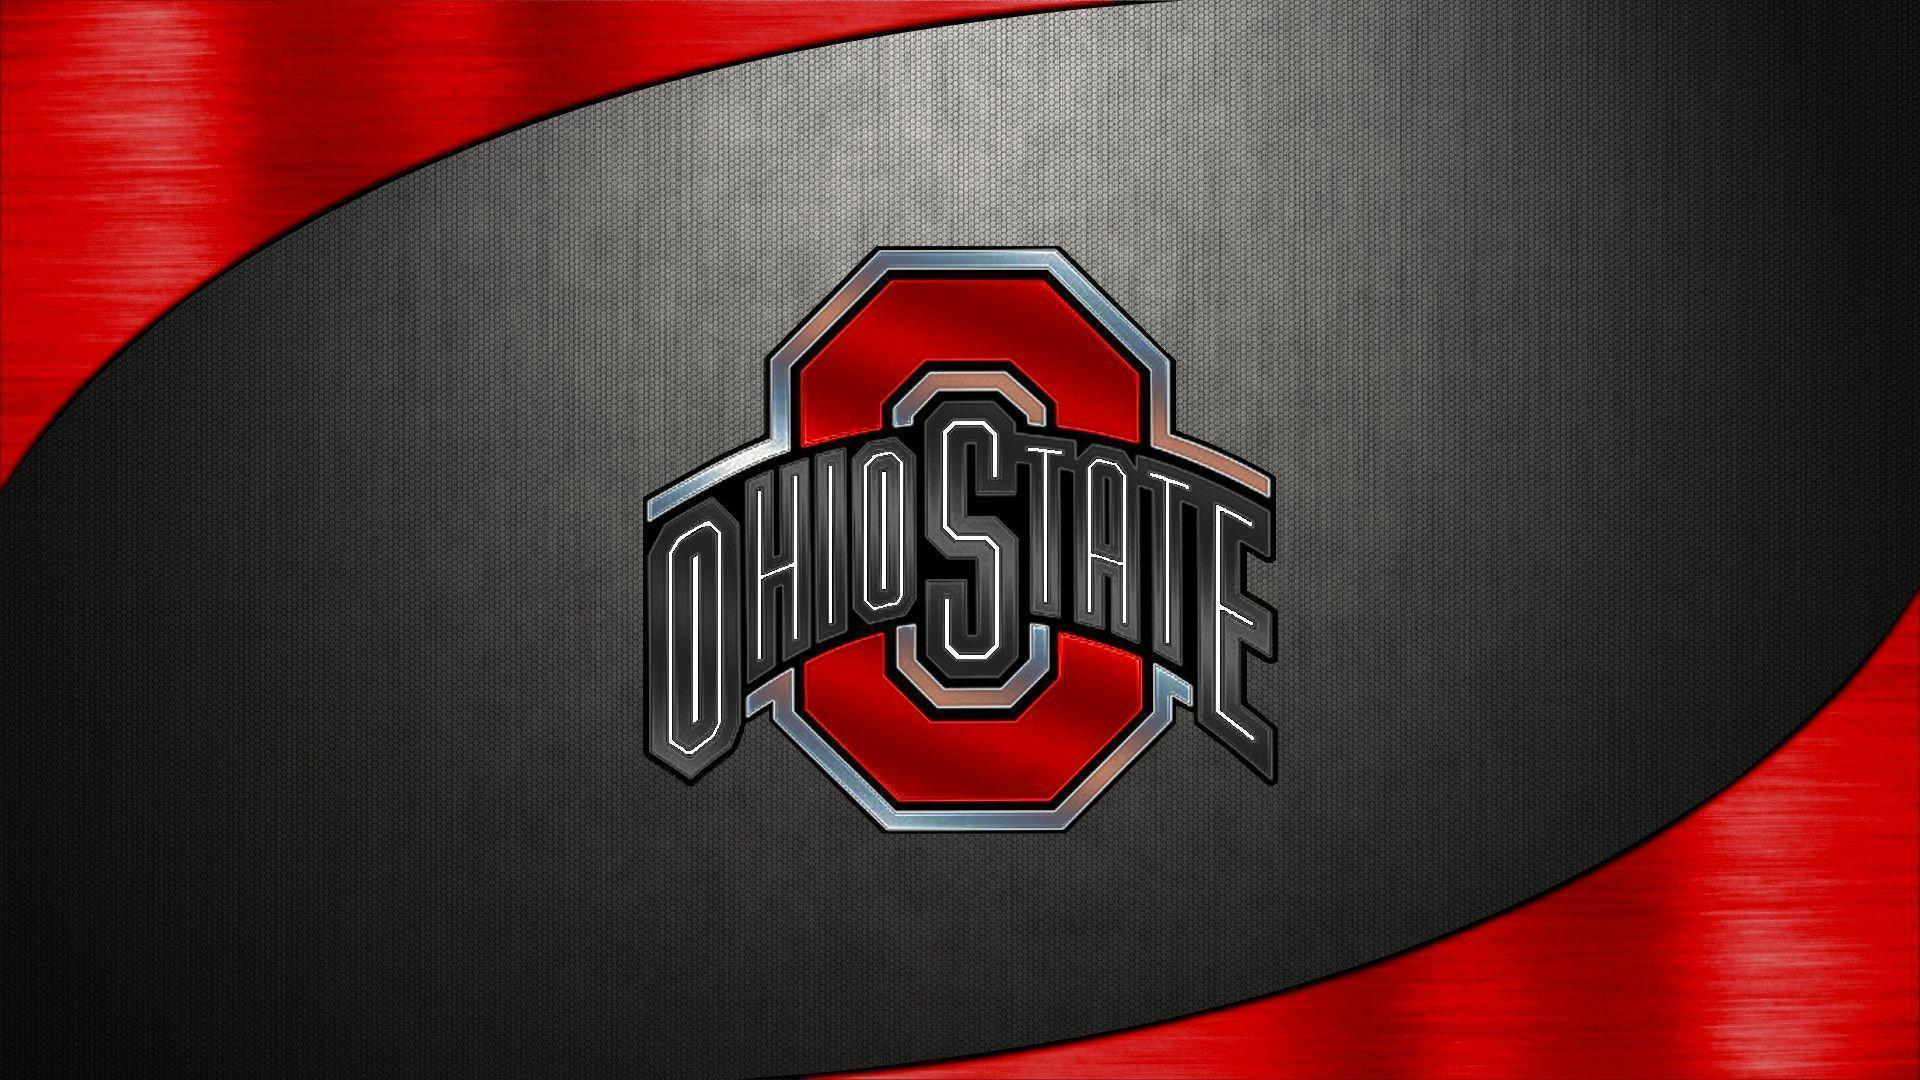 Ohio State Wallpaper Can Be Used As Background for Photos